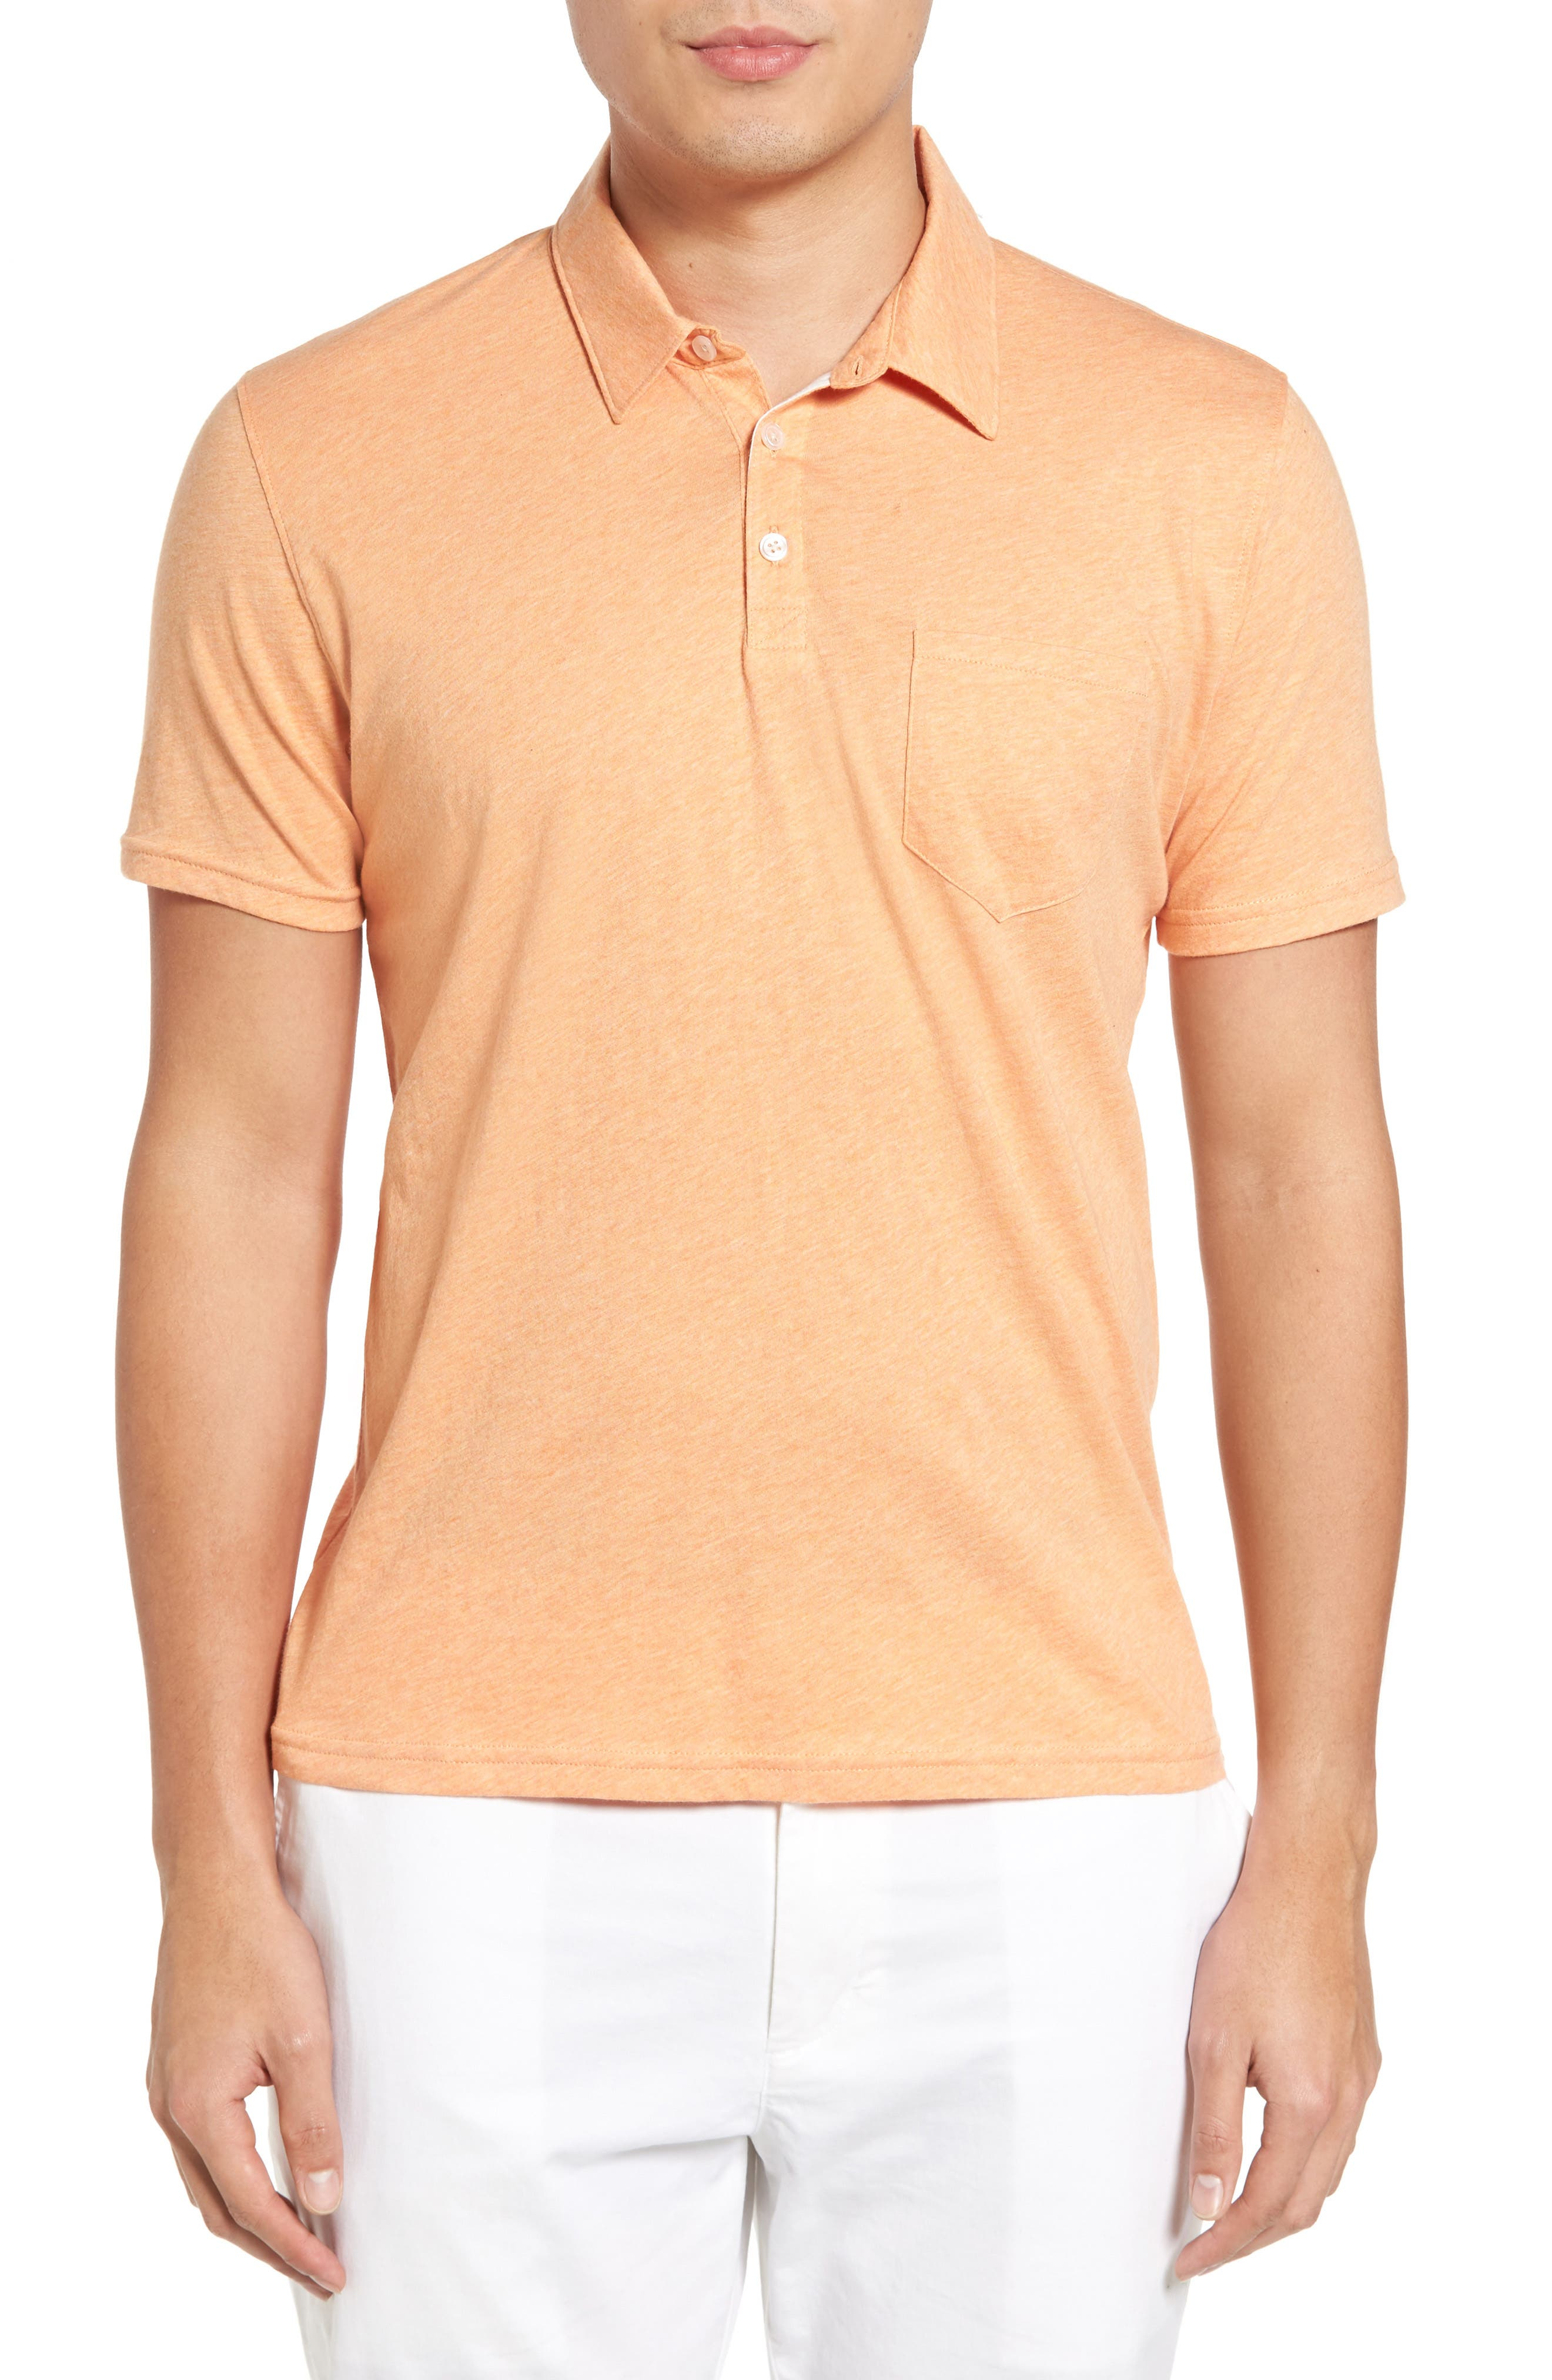 Alternate Image 1 Selected - Zachary Prell Breve Jersey Polo